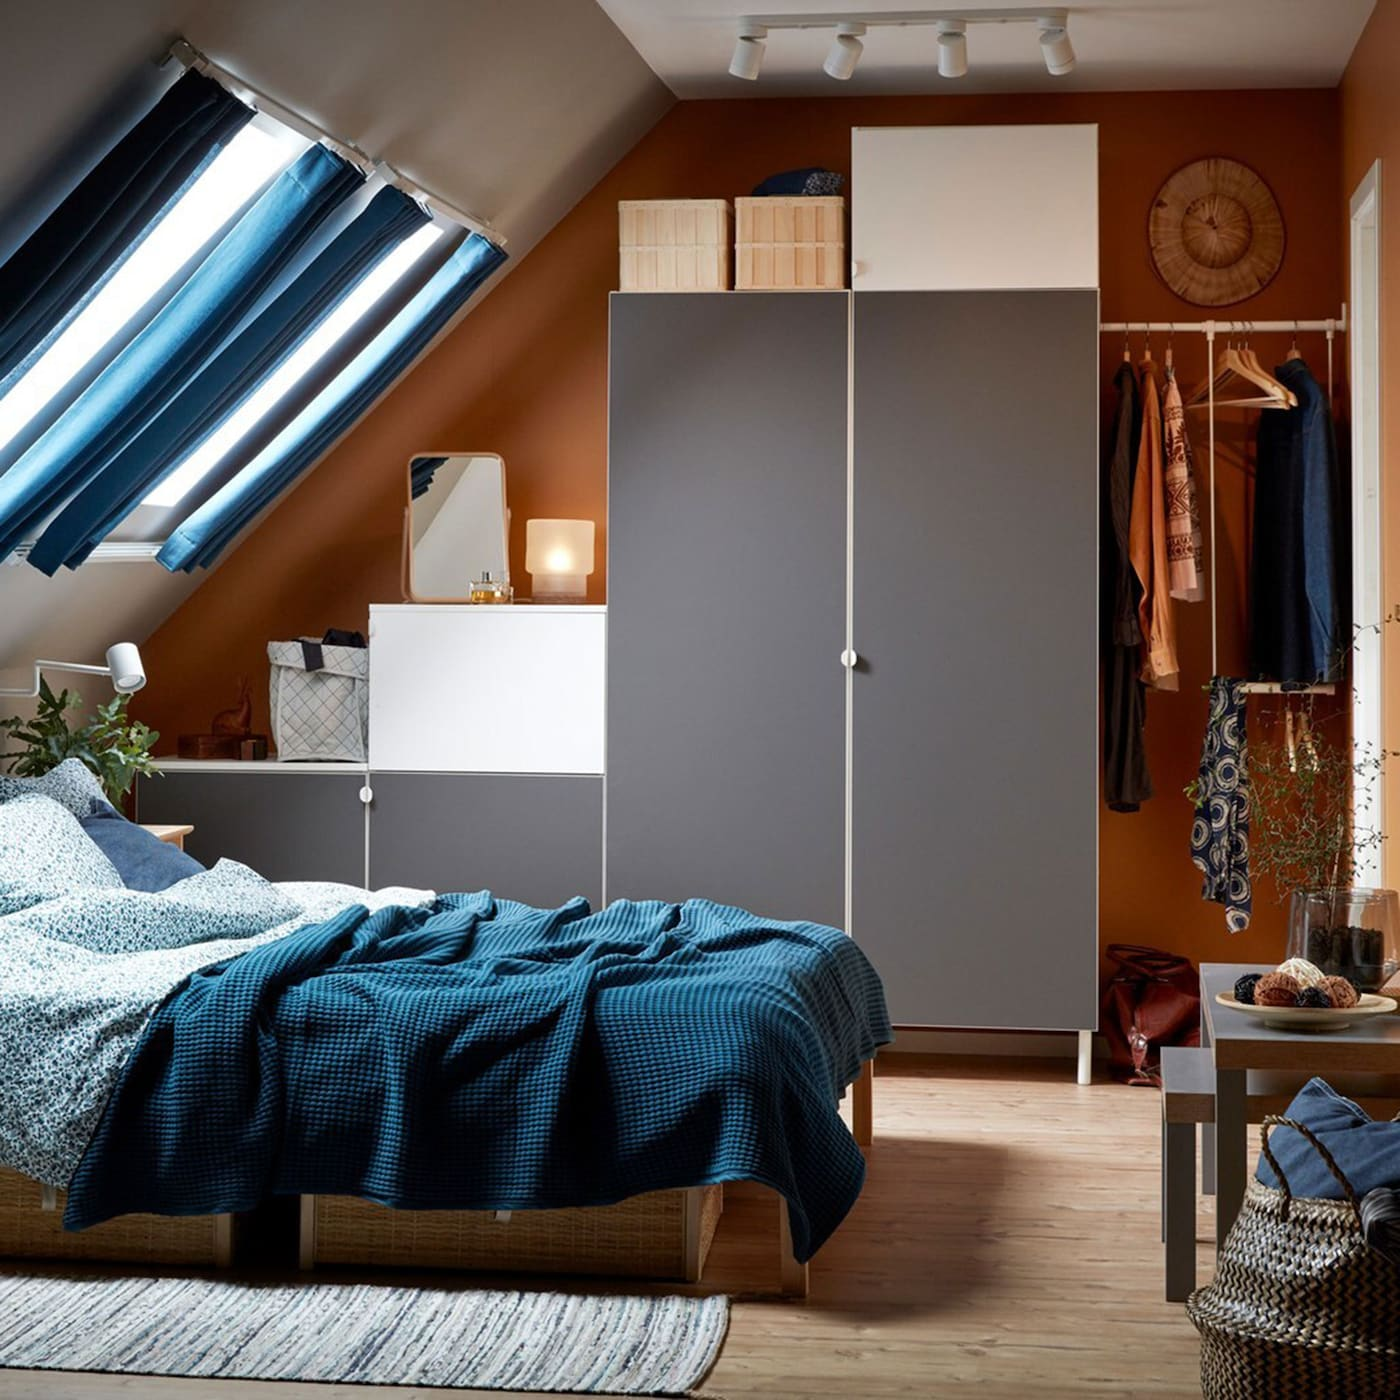 A blue, beige, grey and white bedroom with a sloped ceiling and PLATSA wardrobe in white and light grey against the back wall.